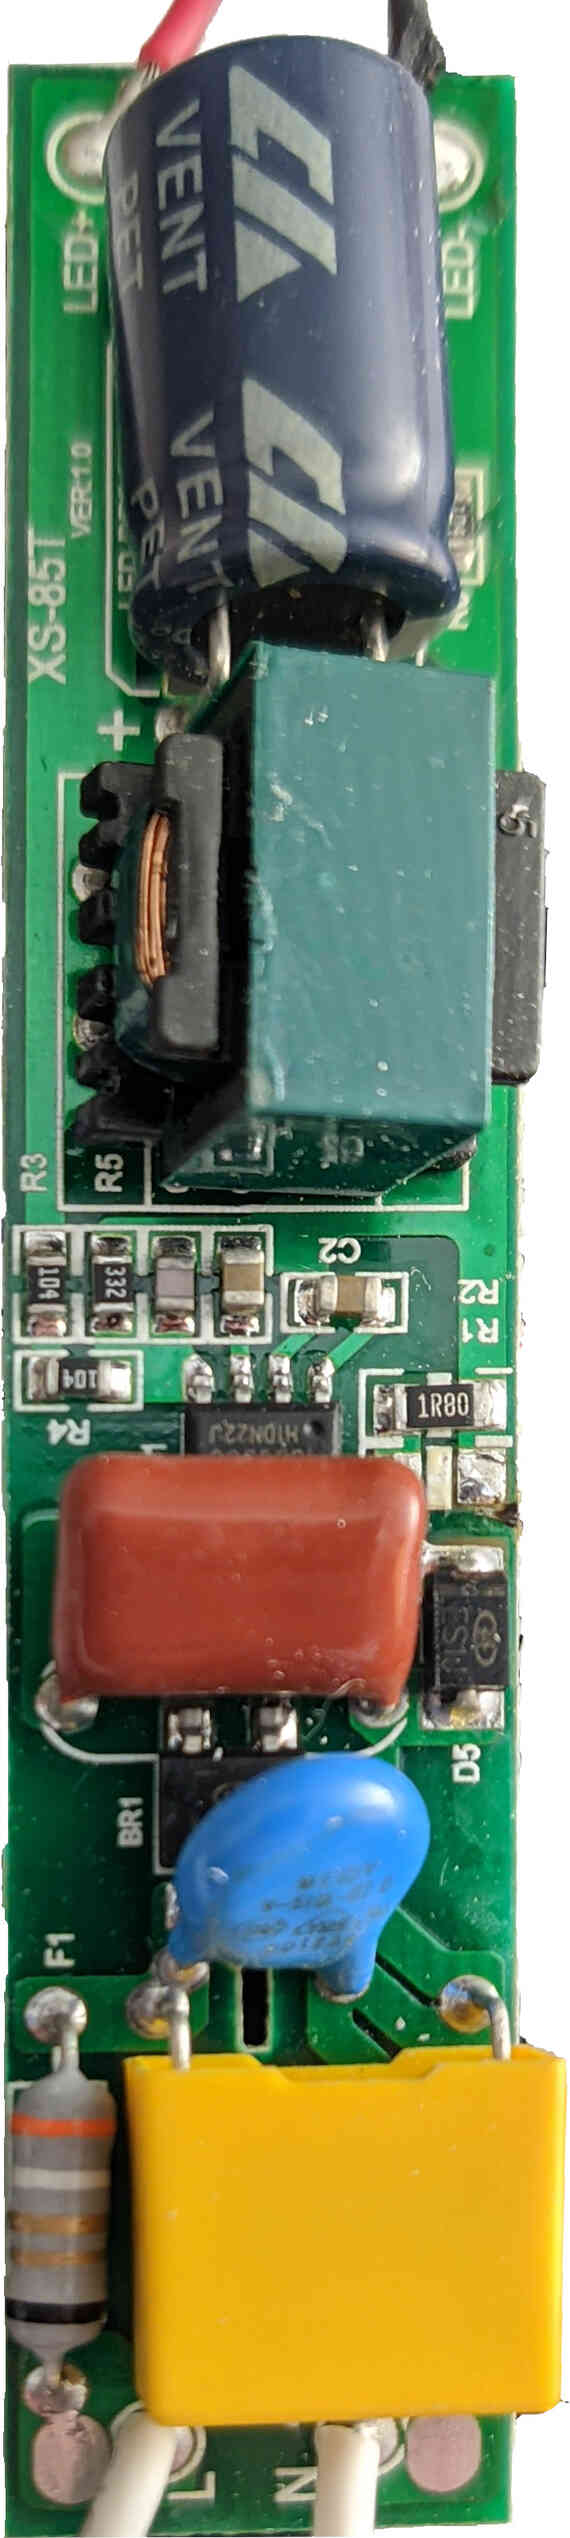 The circuit board for the fan constant-current power supply. This is a non-isolated power supply, and will go all the way up to line voltage if there is no load.